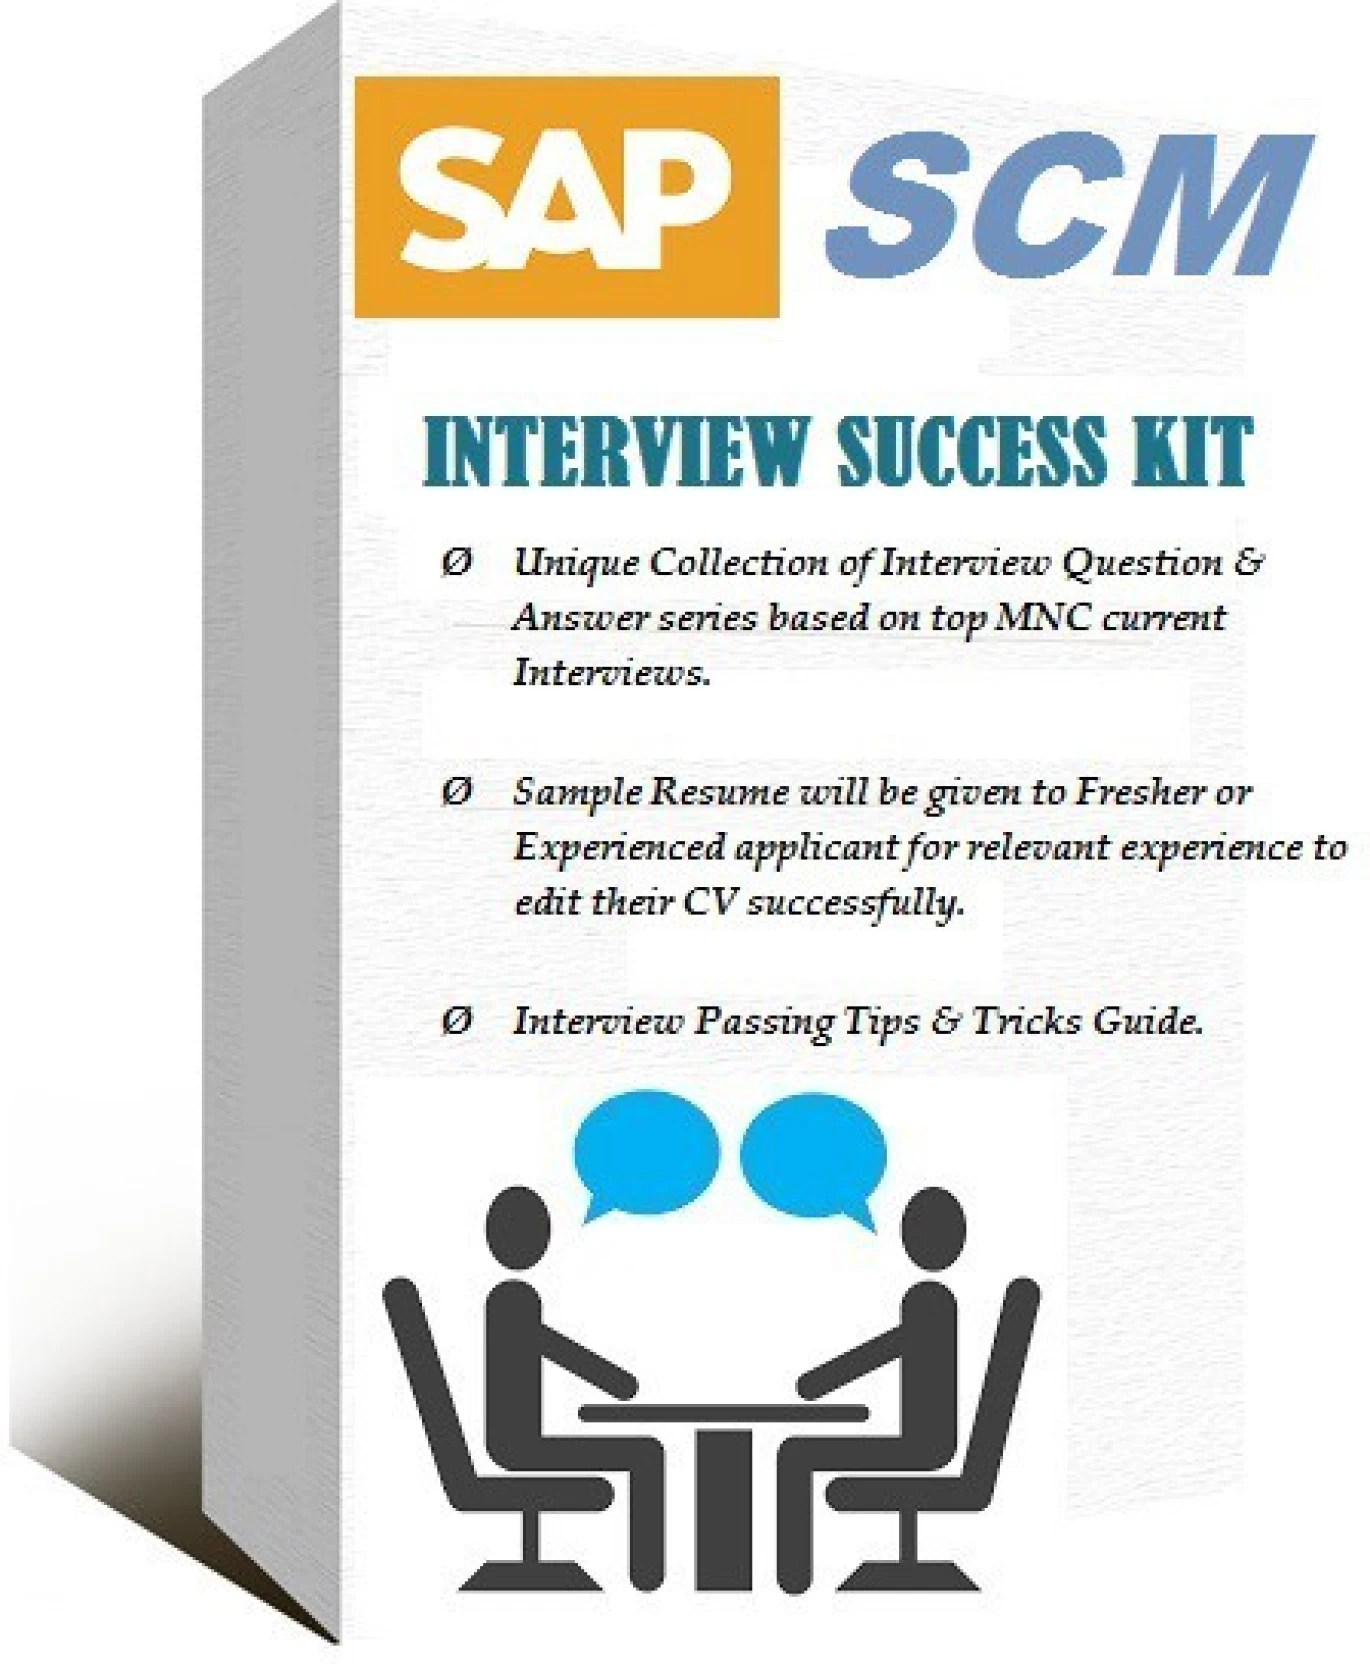 small resolution of sapsmart sap scm online video self learning interview success kit dvd